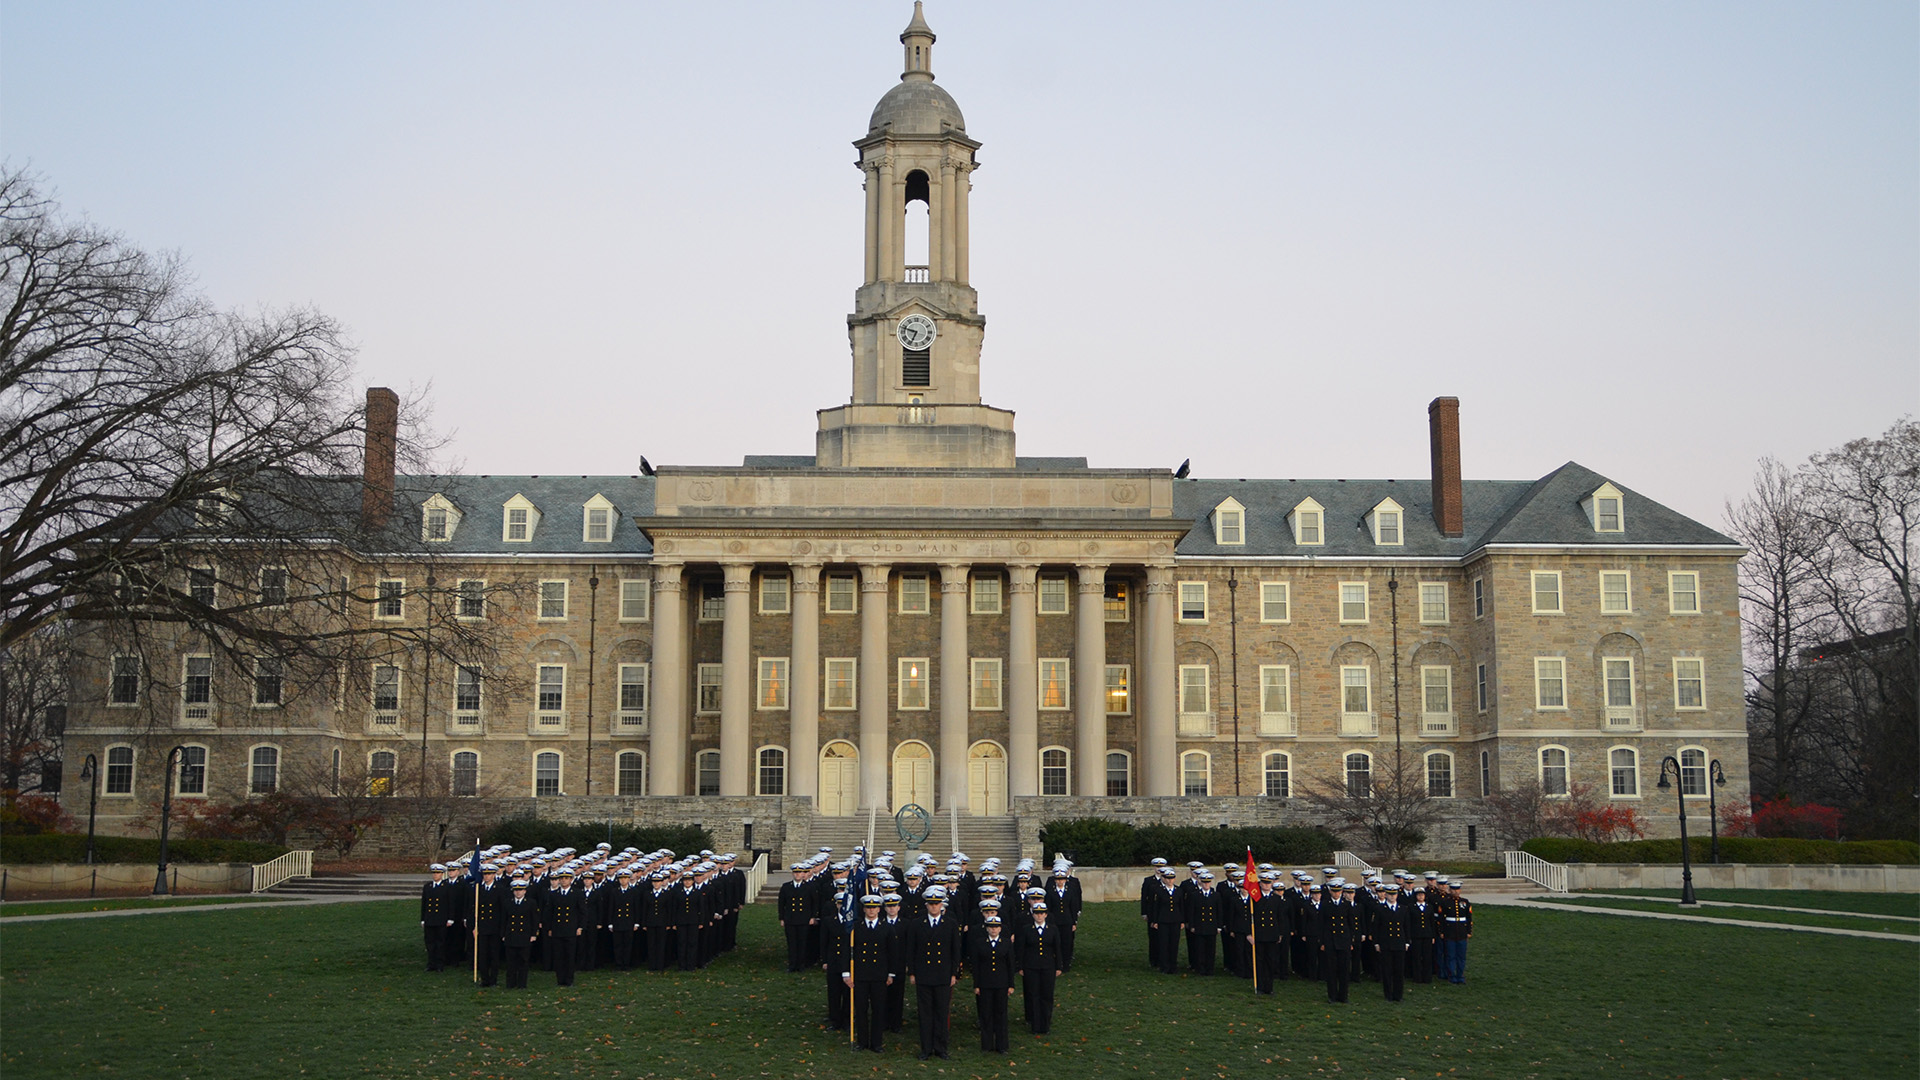 Naval ROTC cadets in formation in front of Old Main